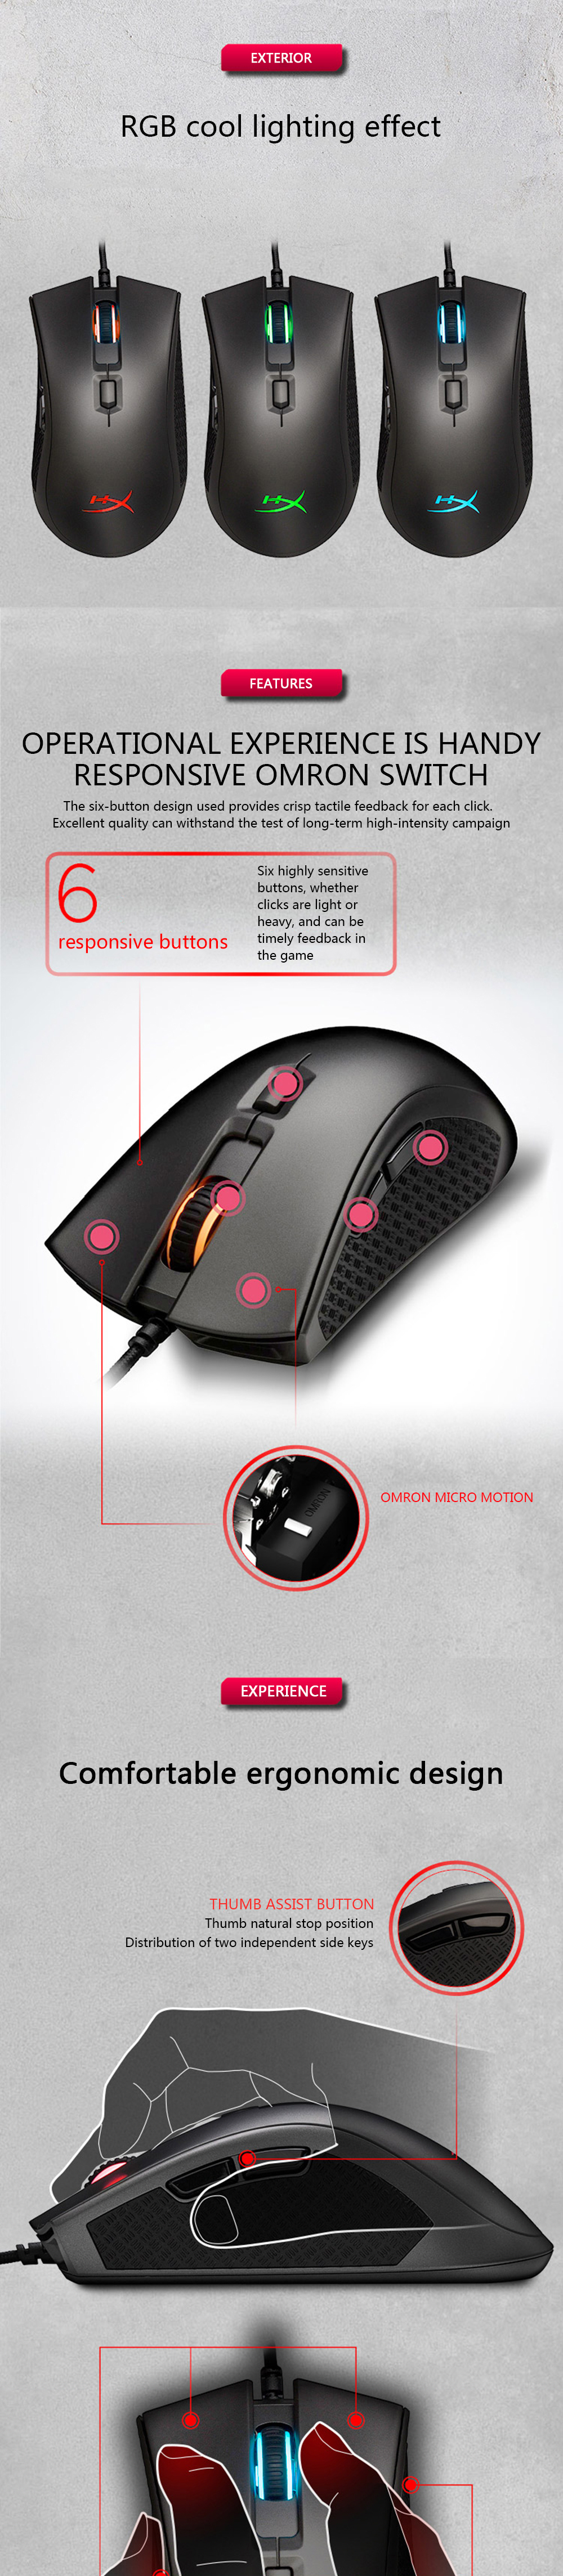 Kingston E-sports mouse HyperX Pulsefire FPS Pro RGB profession Gaming Mouse DPI up to 16000 Pixart 3389 sensor wired mouse